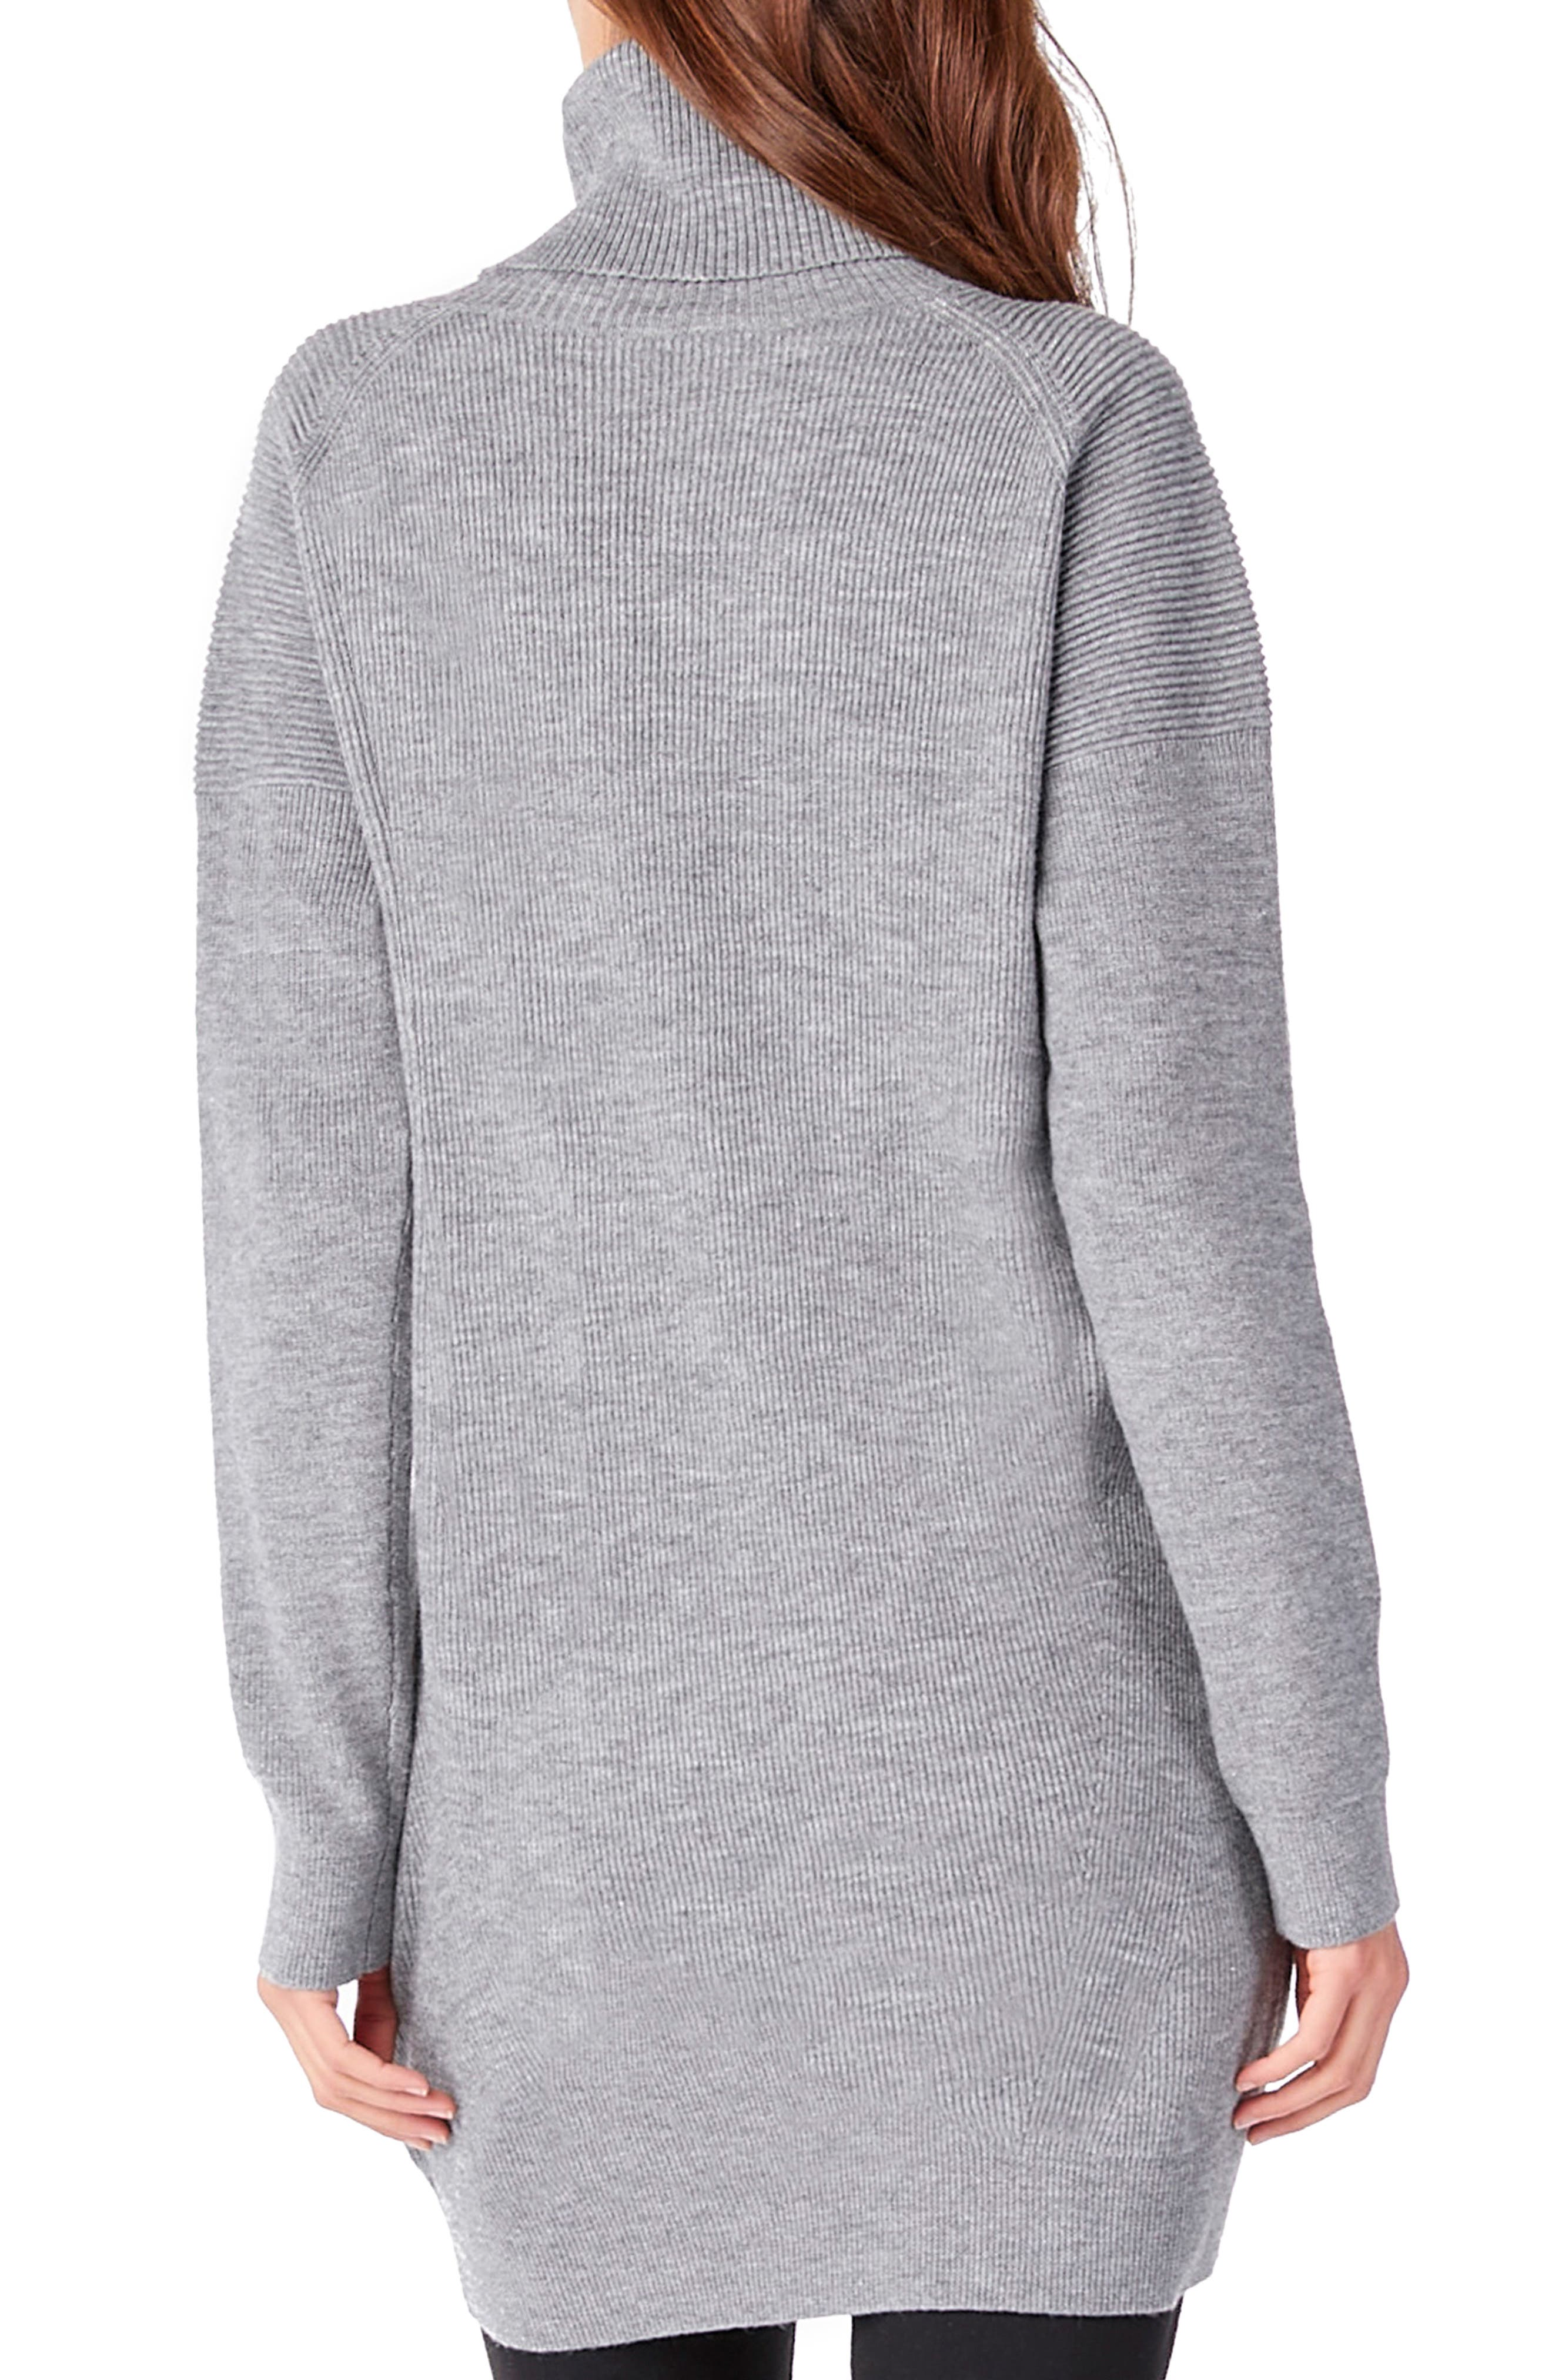 Cowl Neck Tunic,                             Alternate thumbnail 2, color,                             Heather Grey